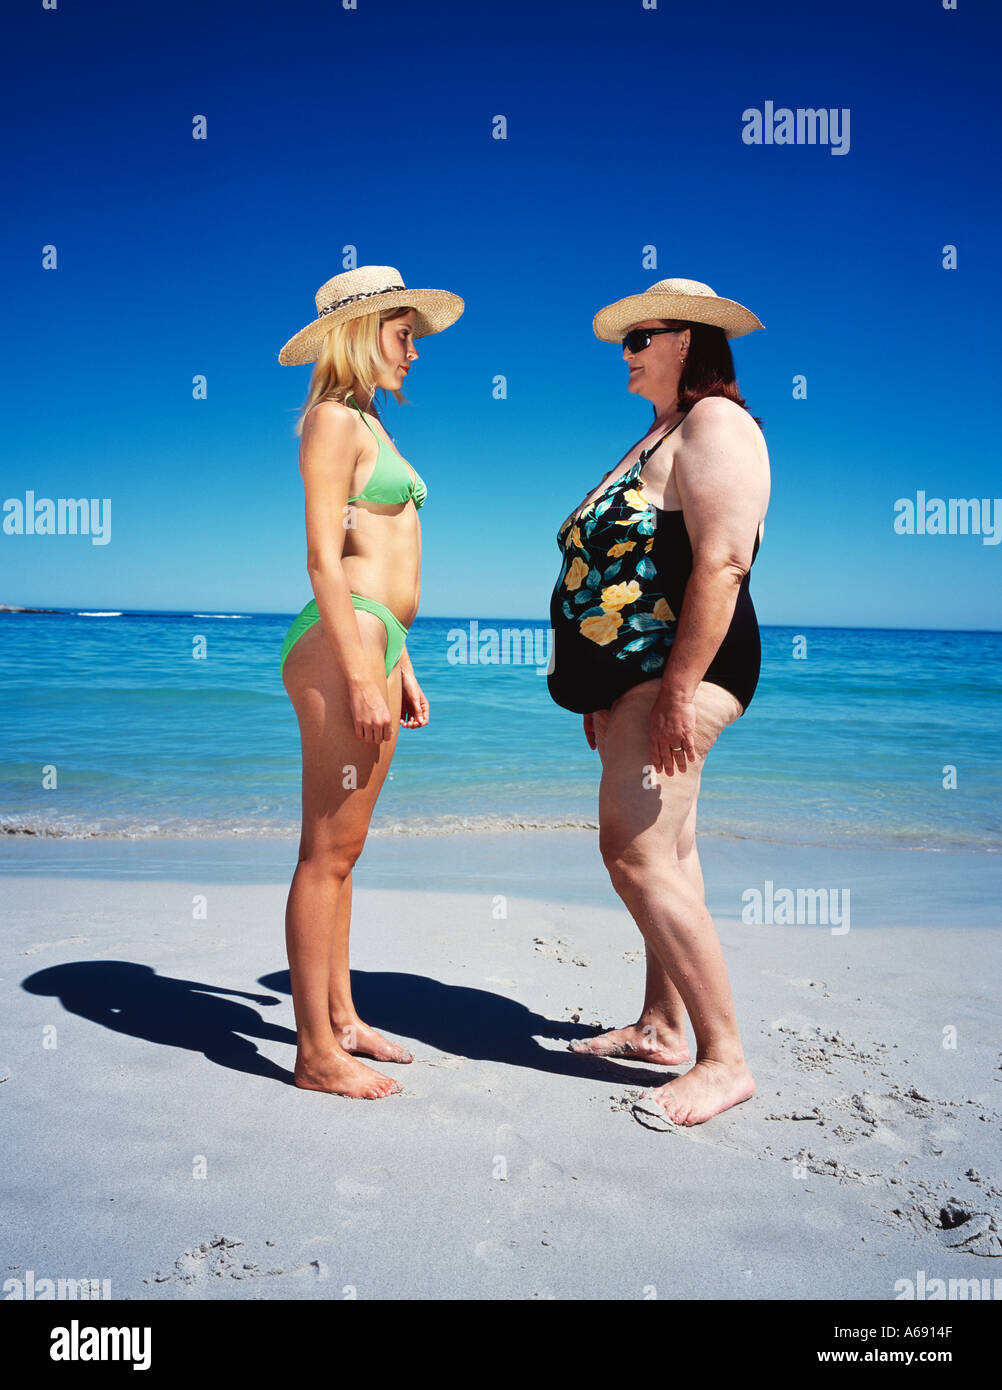 Fat girls on beach